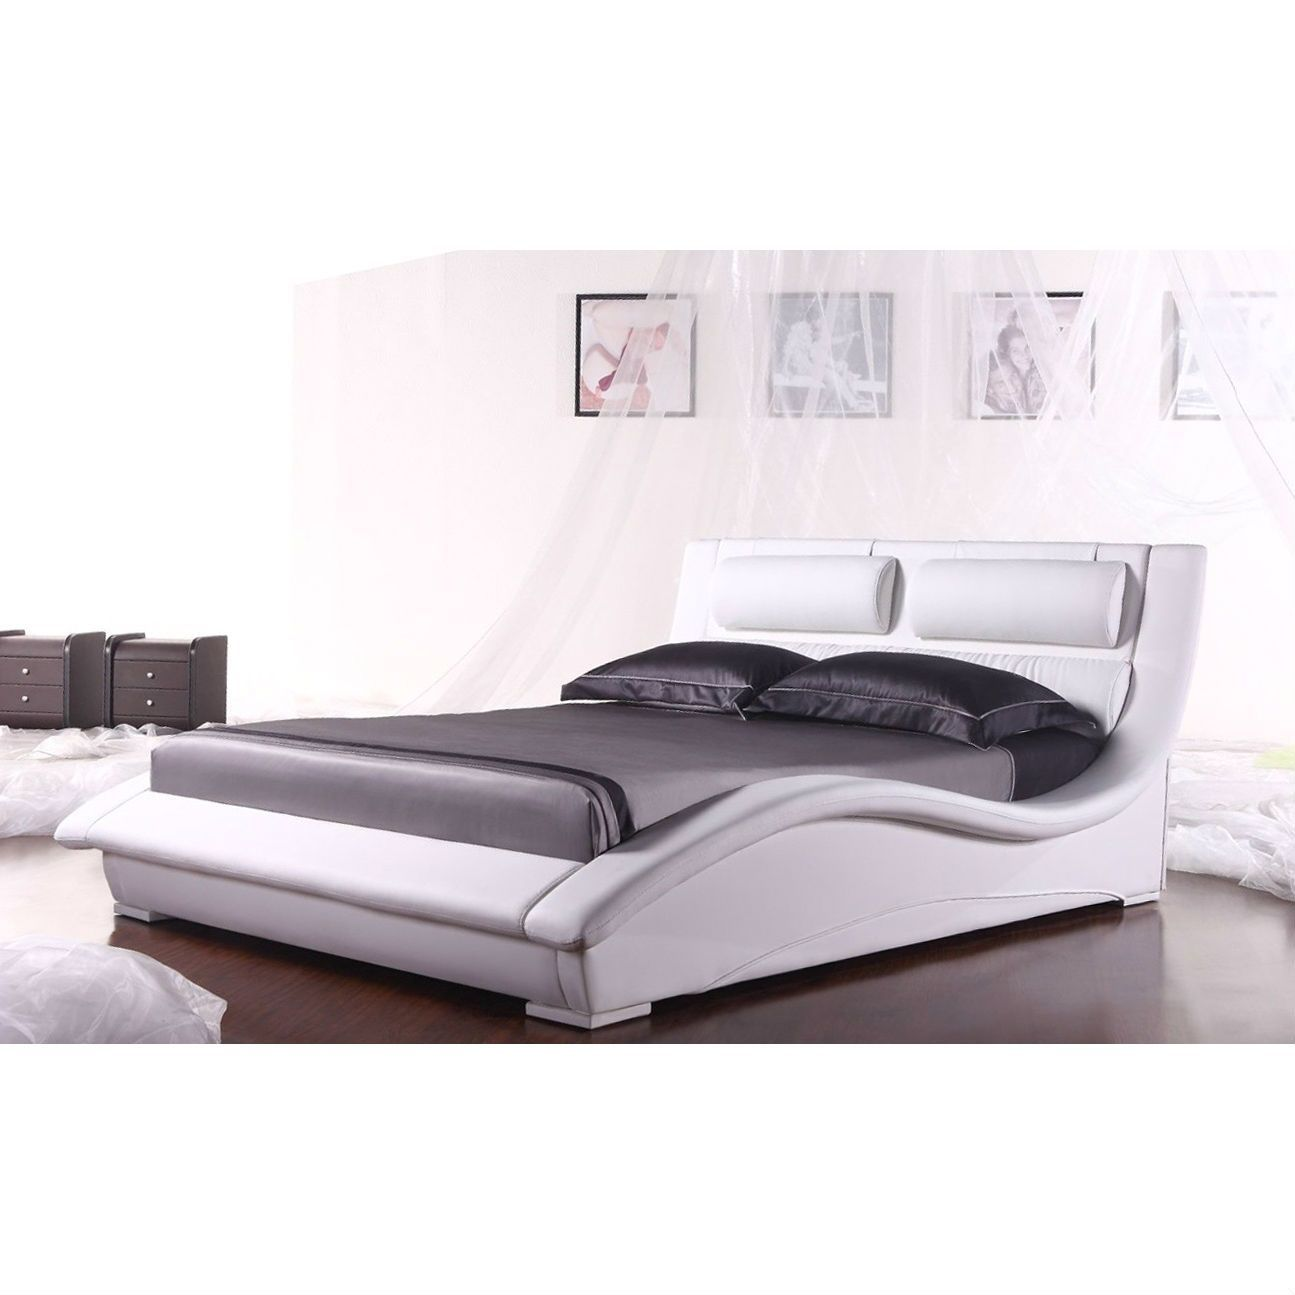 King Size Modern White Faux Leather Platform Bed w/ Headboard ...